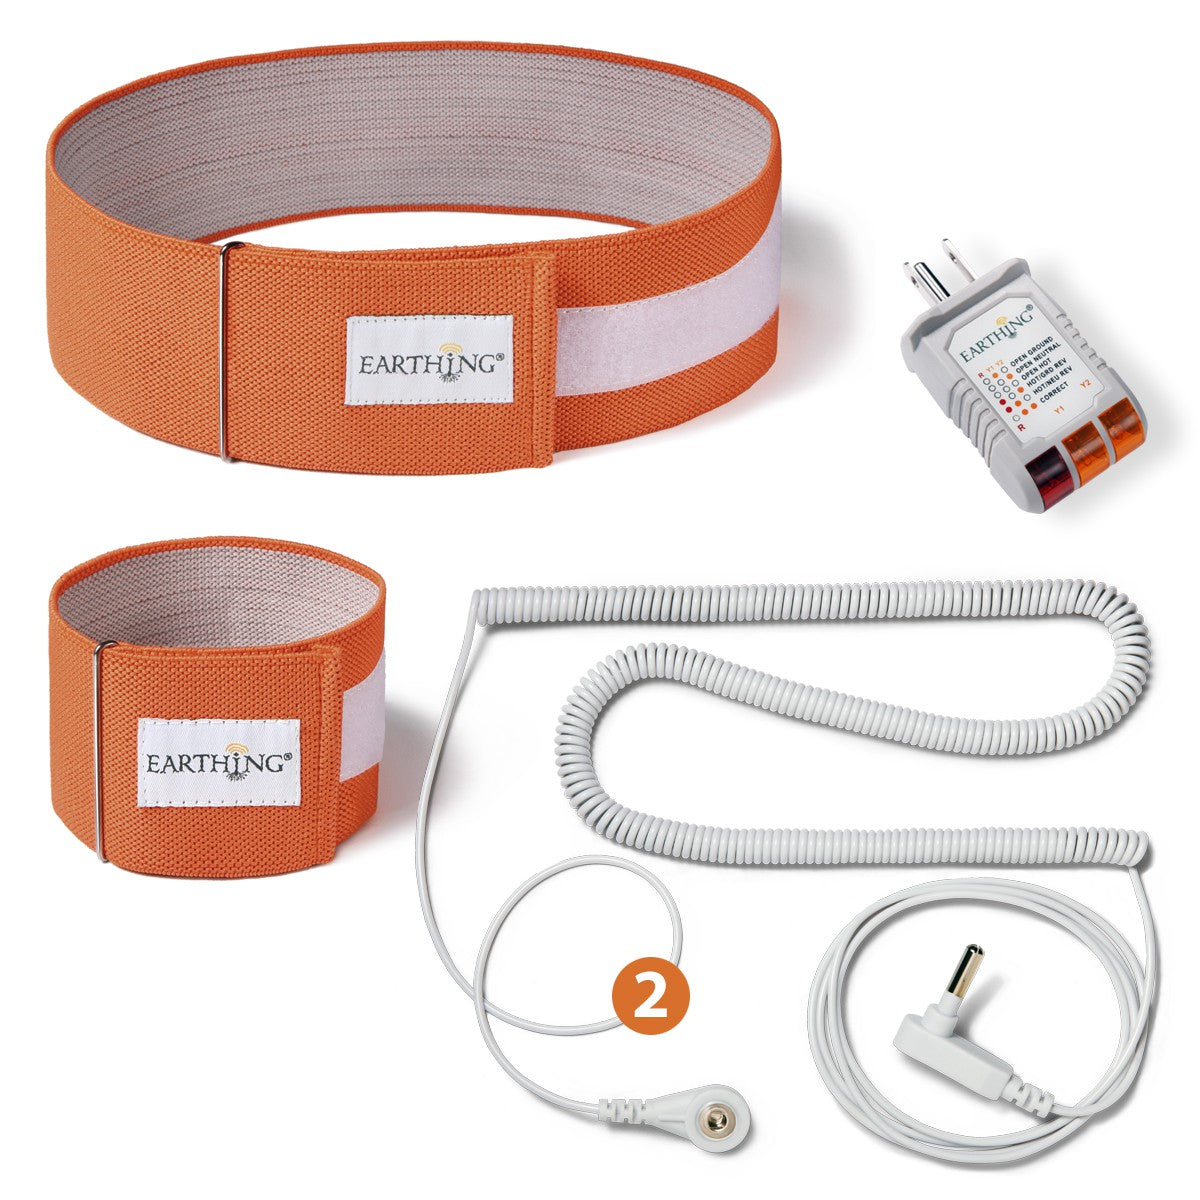 Earthing Body Band Kit - Yoga Vedanta